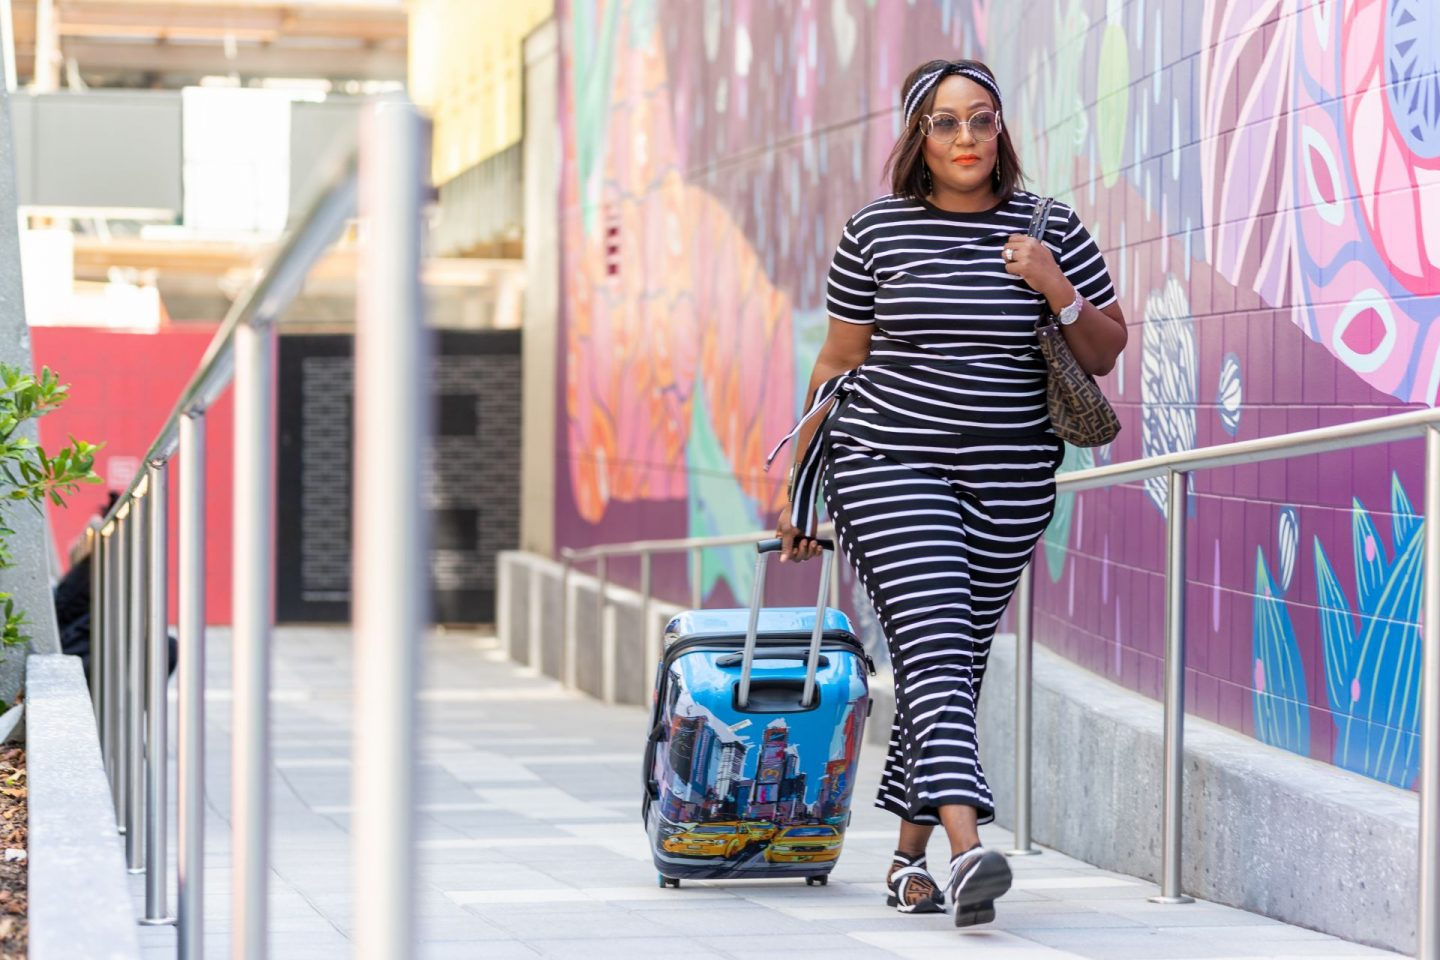 Influencer Nikki Free in black and white stripe coordinates pulling luggage